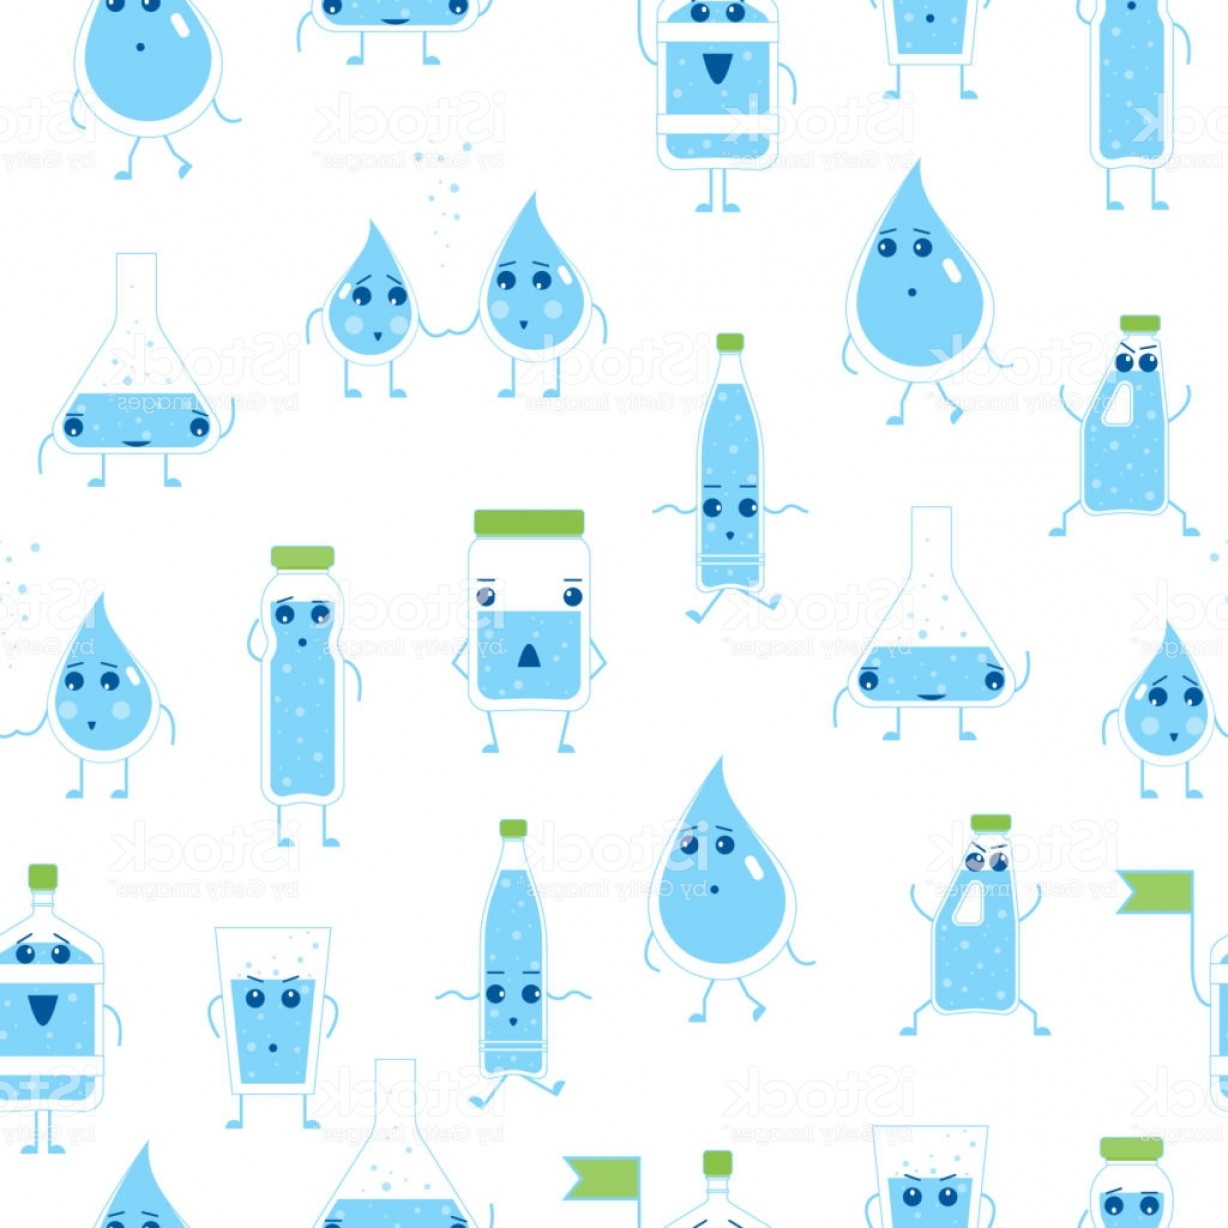 Cartoon Water Background Vector Clip Art: Cartoon Water Funny Emotions Bottle Seamless Pattern Background Vector Gm